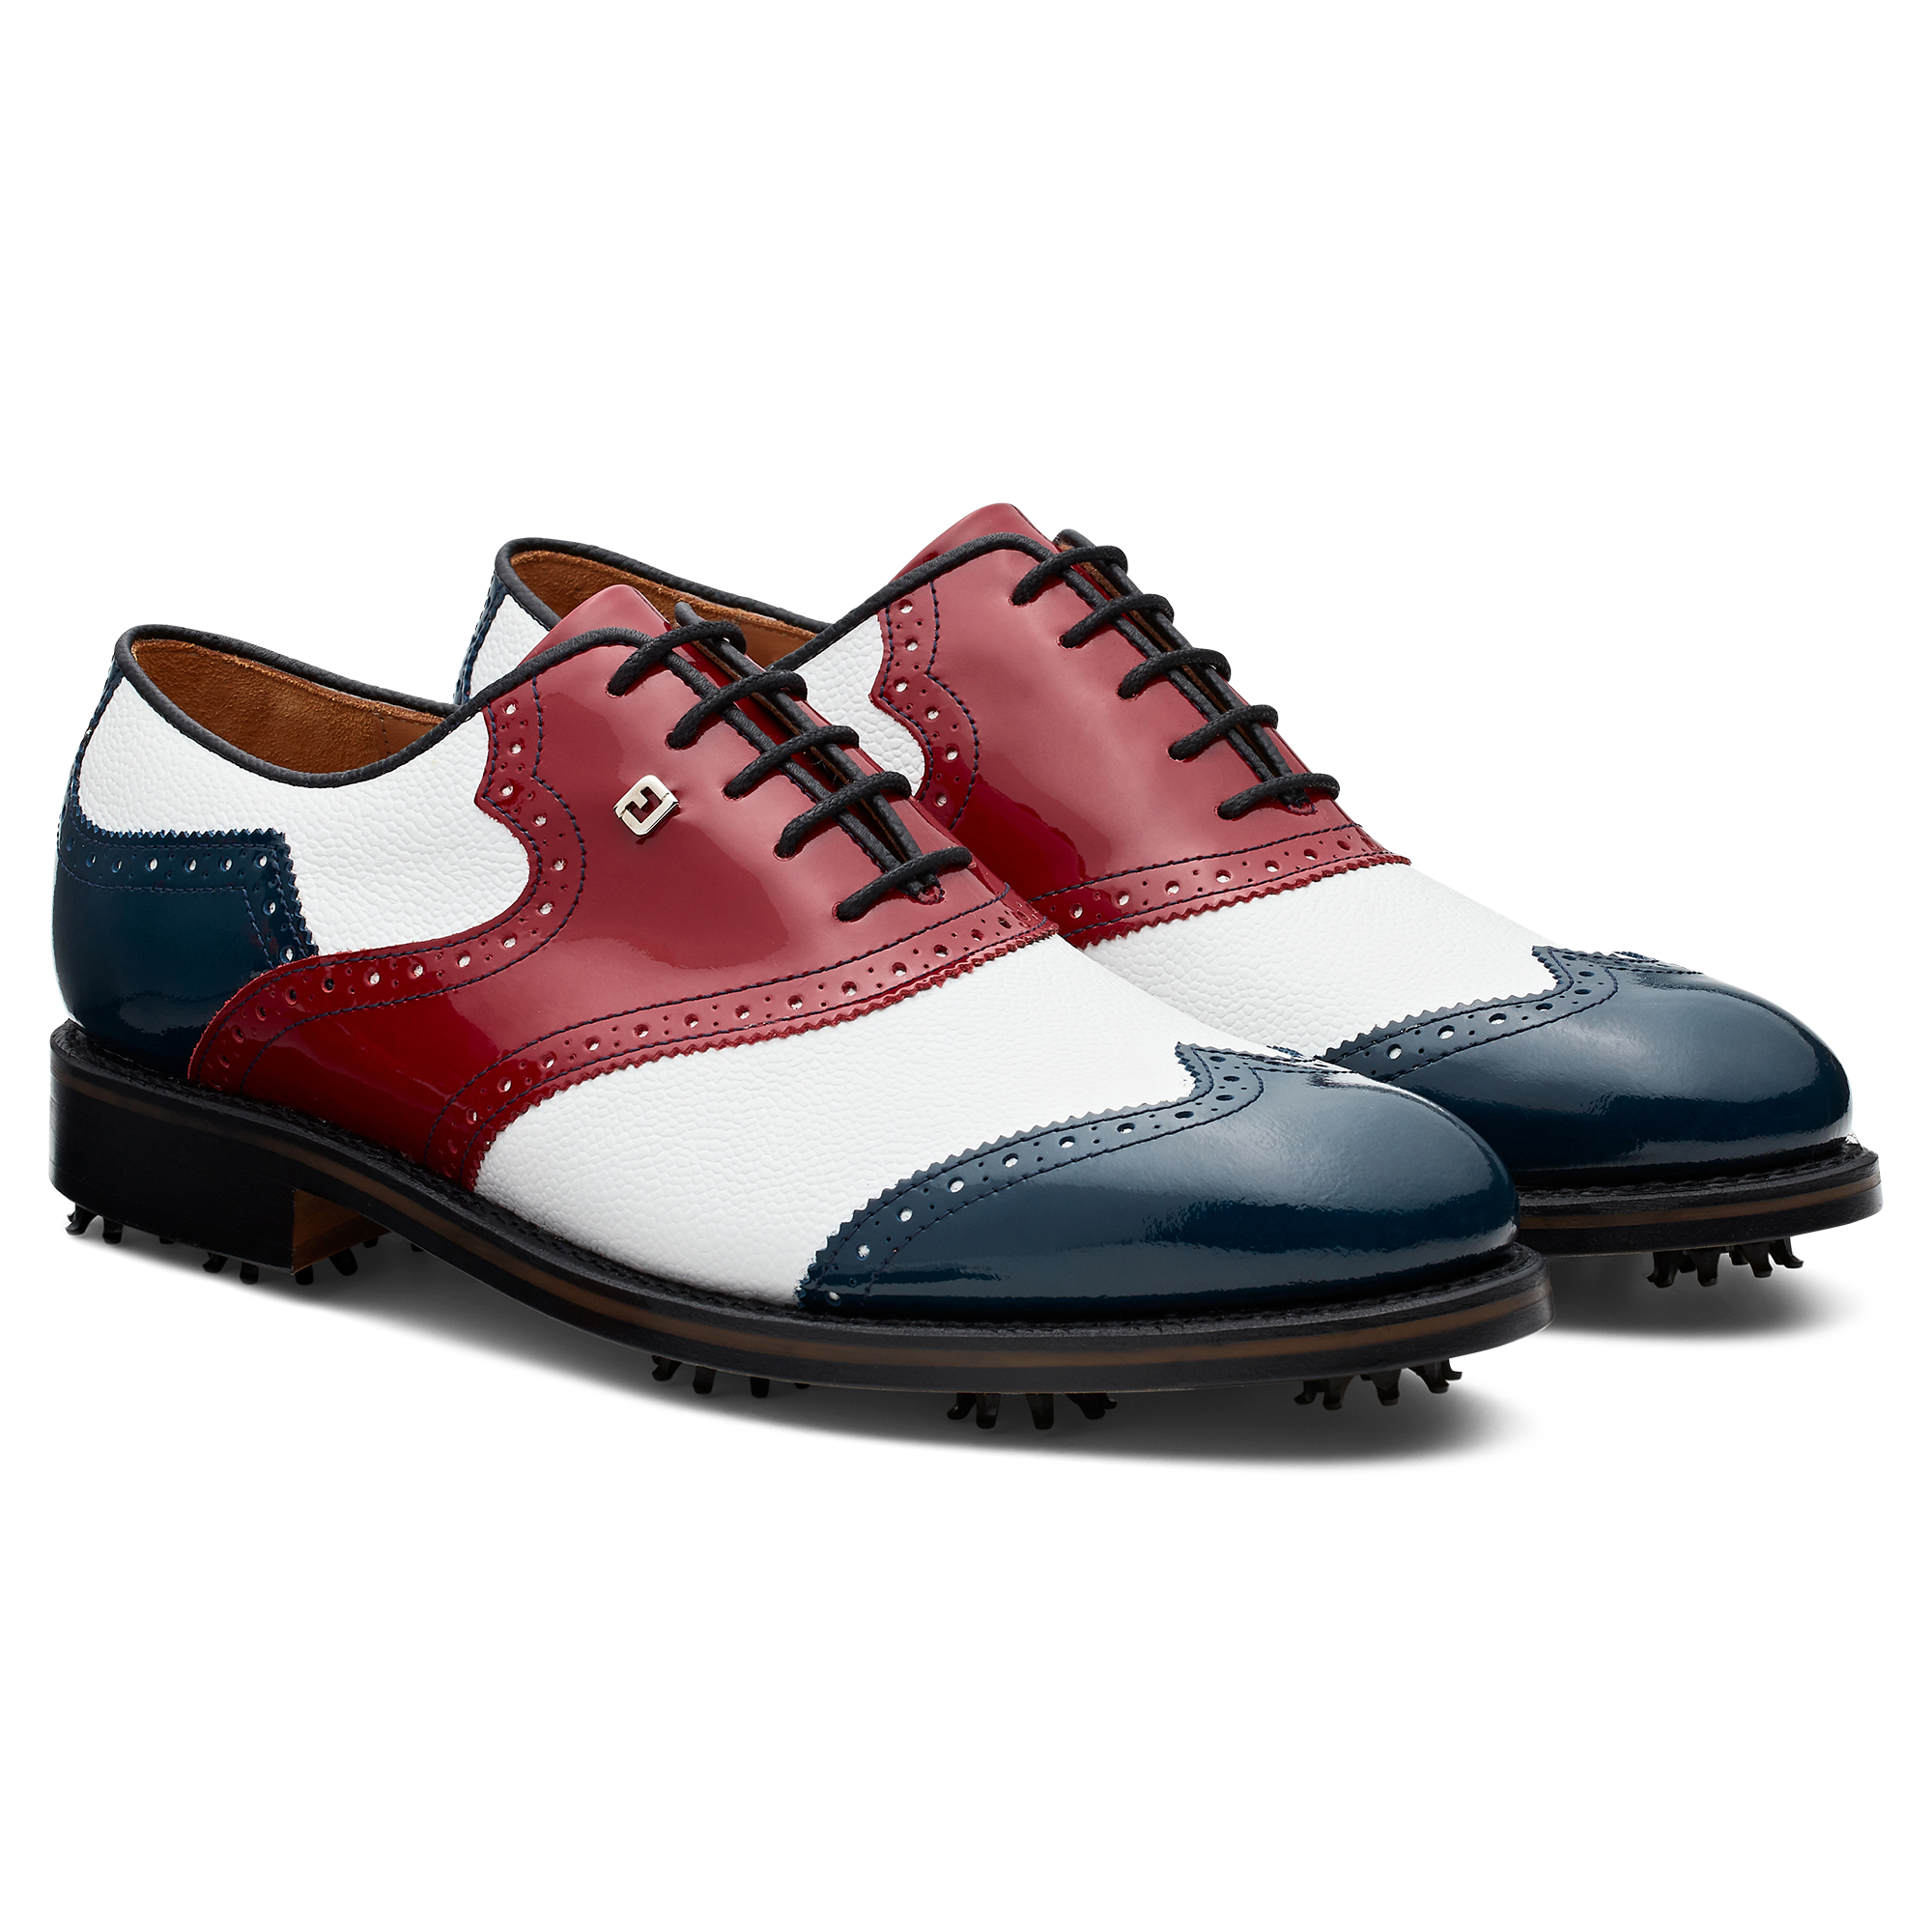 White / Navy / Red Patent